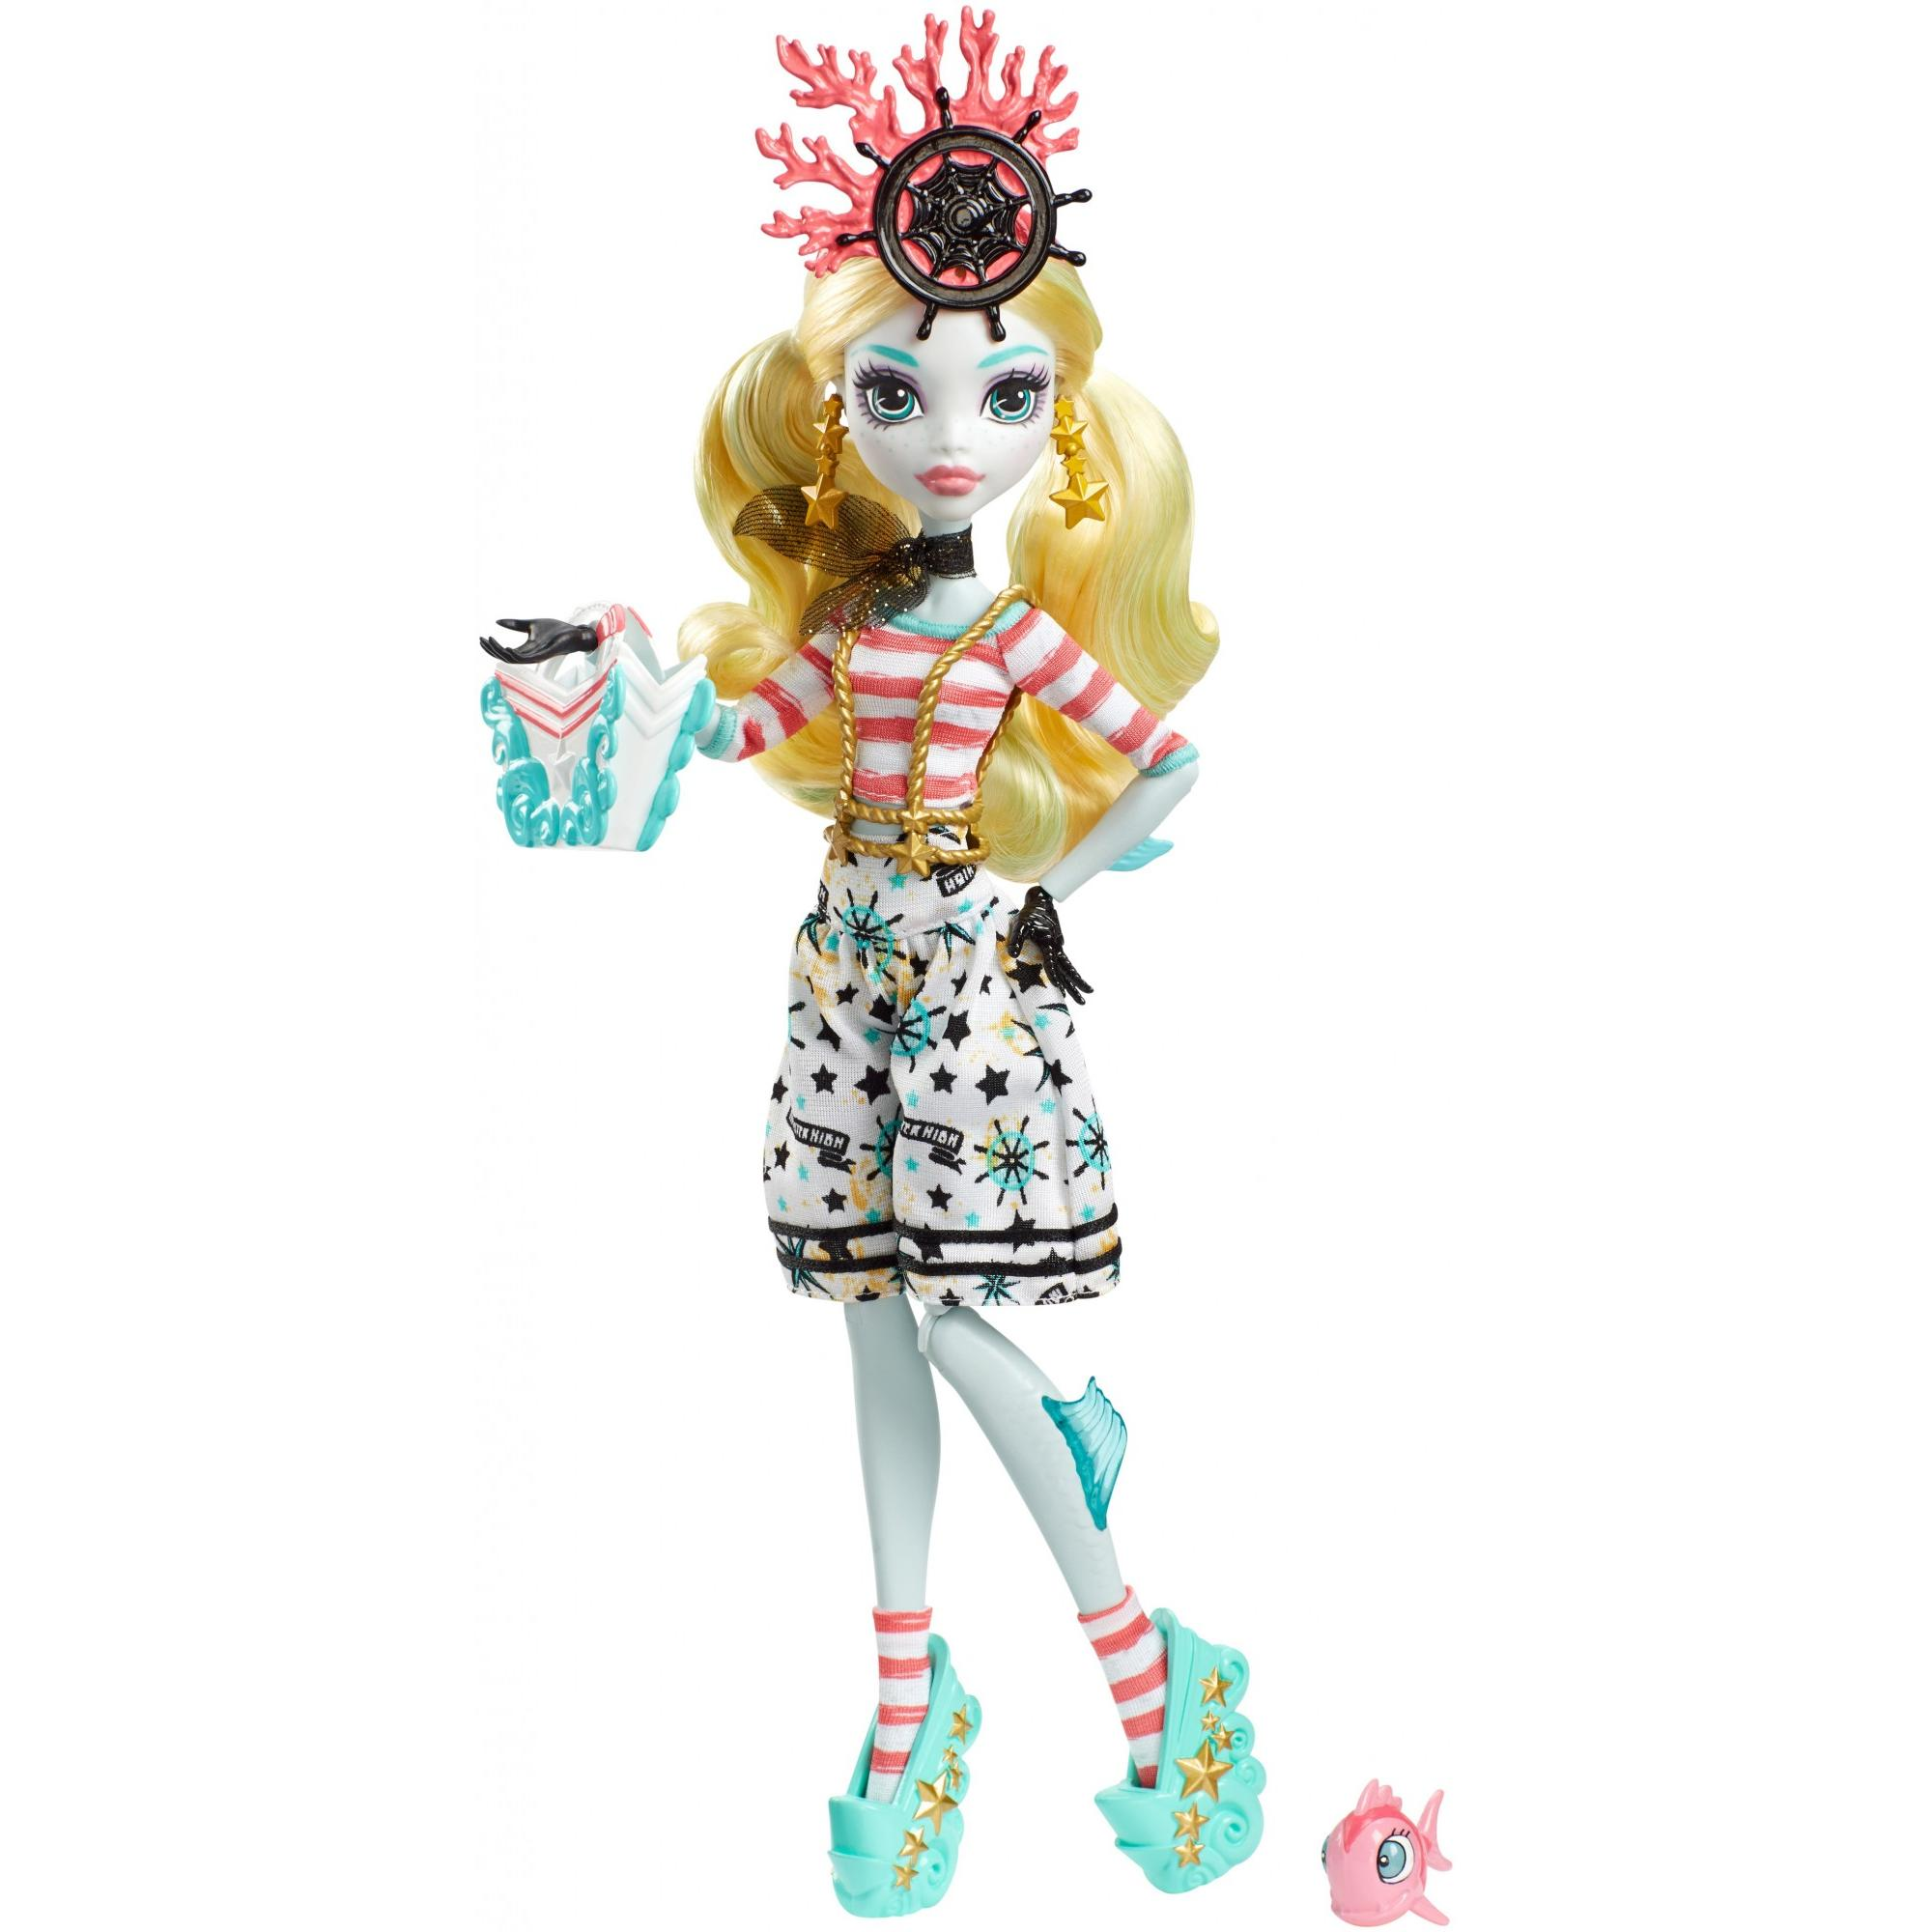 Monster High Shriekwrecked Nautical Ghouls Lagoona Blue Doll by MATTEL INC.